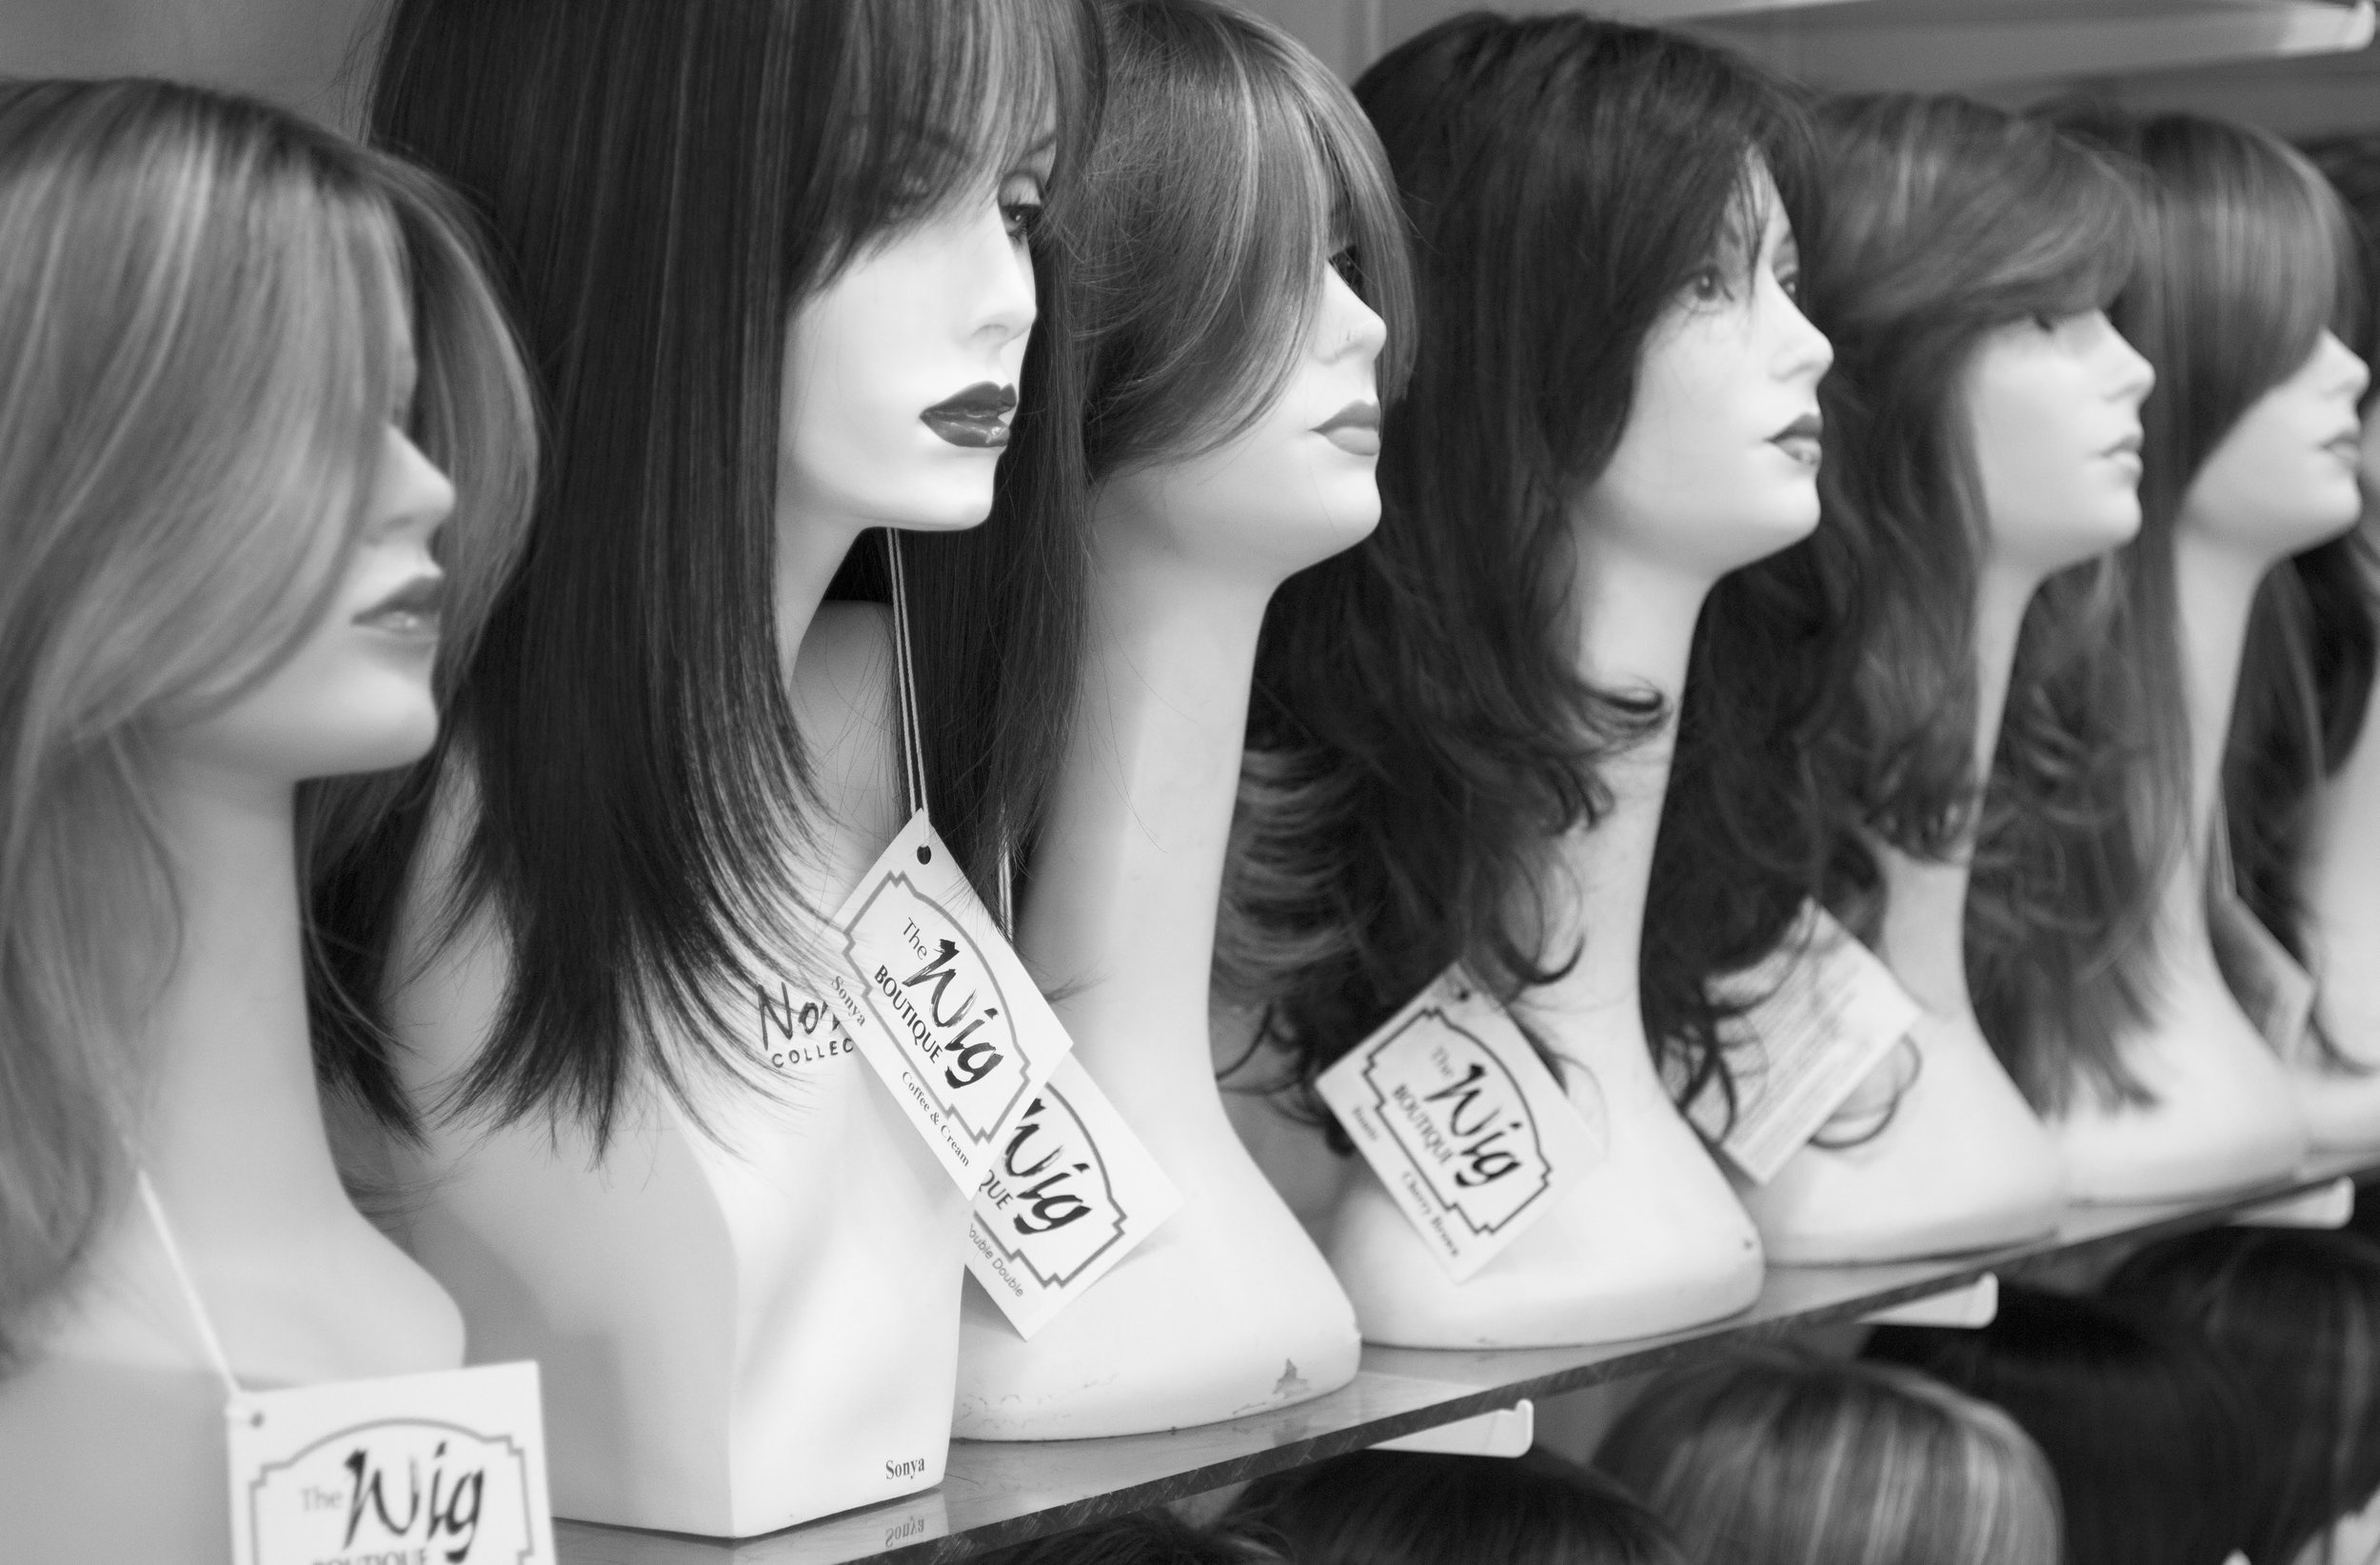 A 50 year legacy. - Founded in 1965, The Wig Boutique began serving the Edmonton area when it was a fashion trend for all women to have a wig.